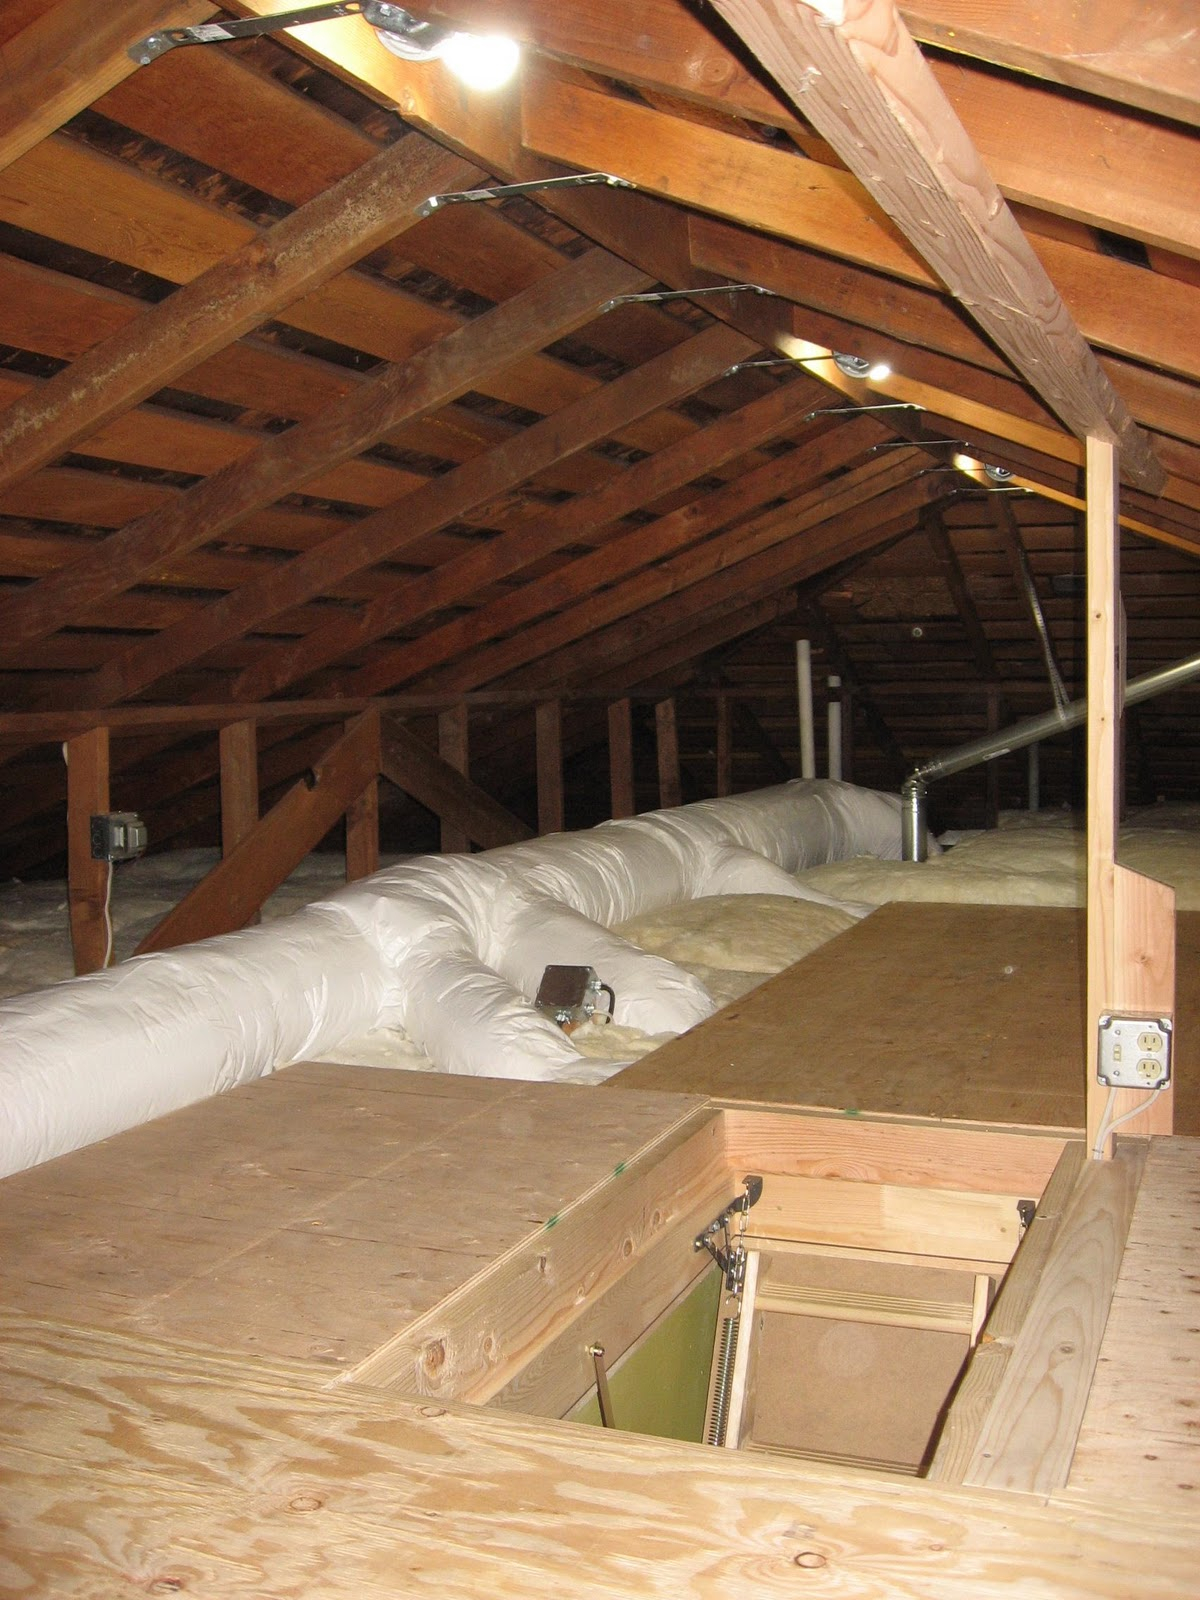 Attic Ladder Installation Phillip Norman Attic Access pertaining to sizing 1200 X 1600